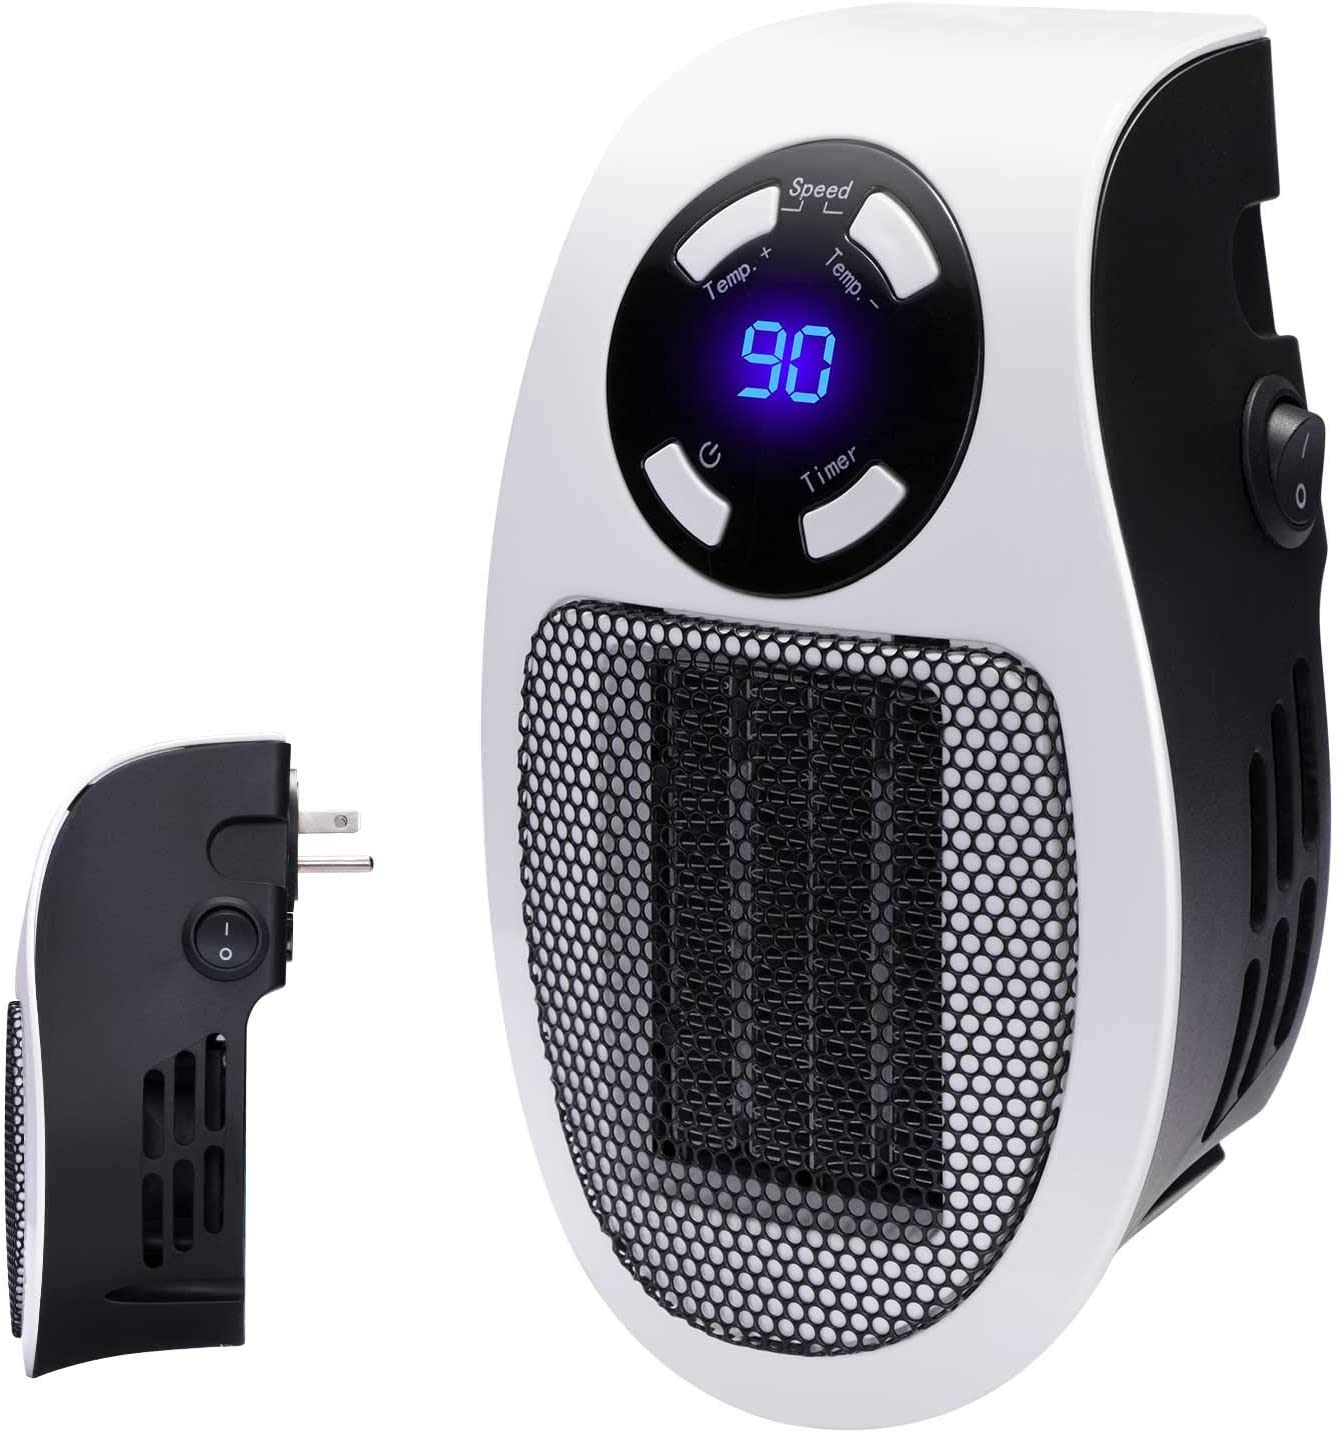 Programmable Space Heater with LED Display: Wall-Outlet Electric Heater with Adjustable Thermostat & Timer for Home Office Indoor Use | 350-Watt ETL Listed